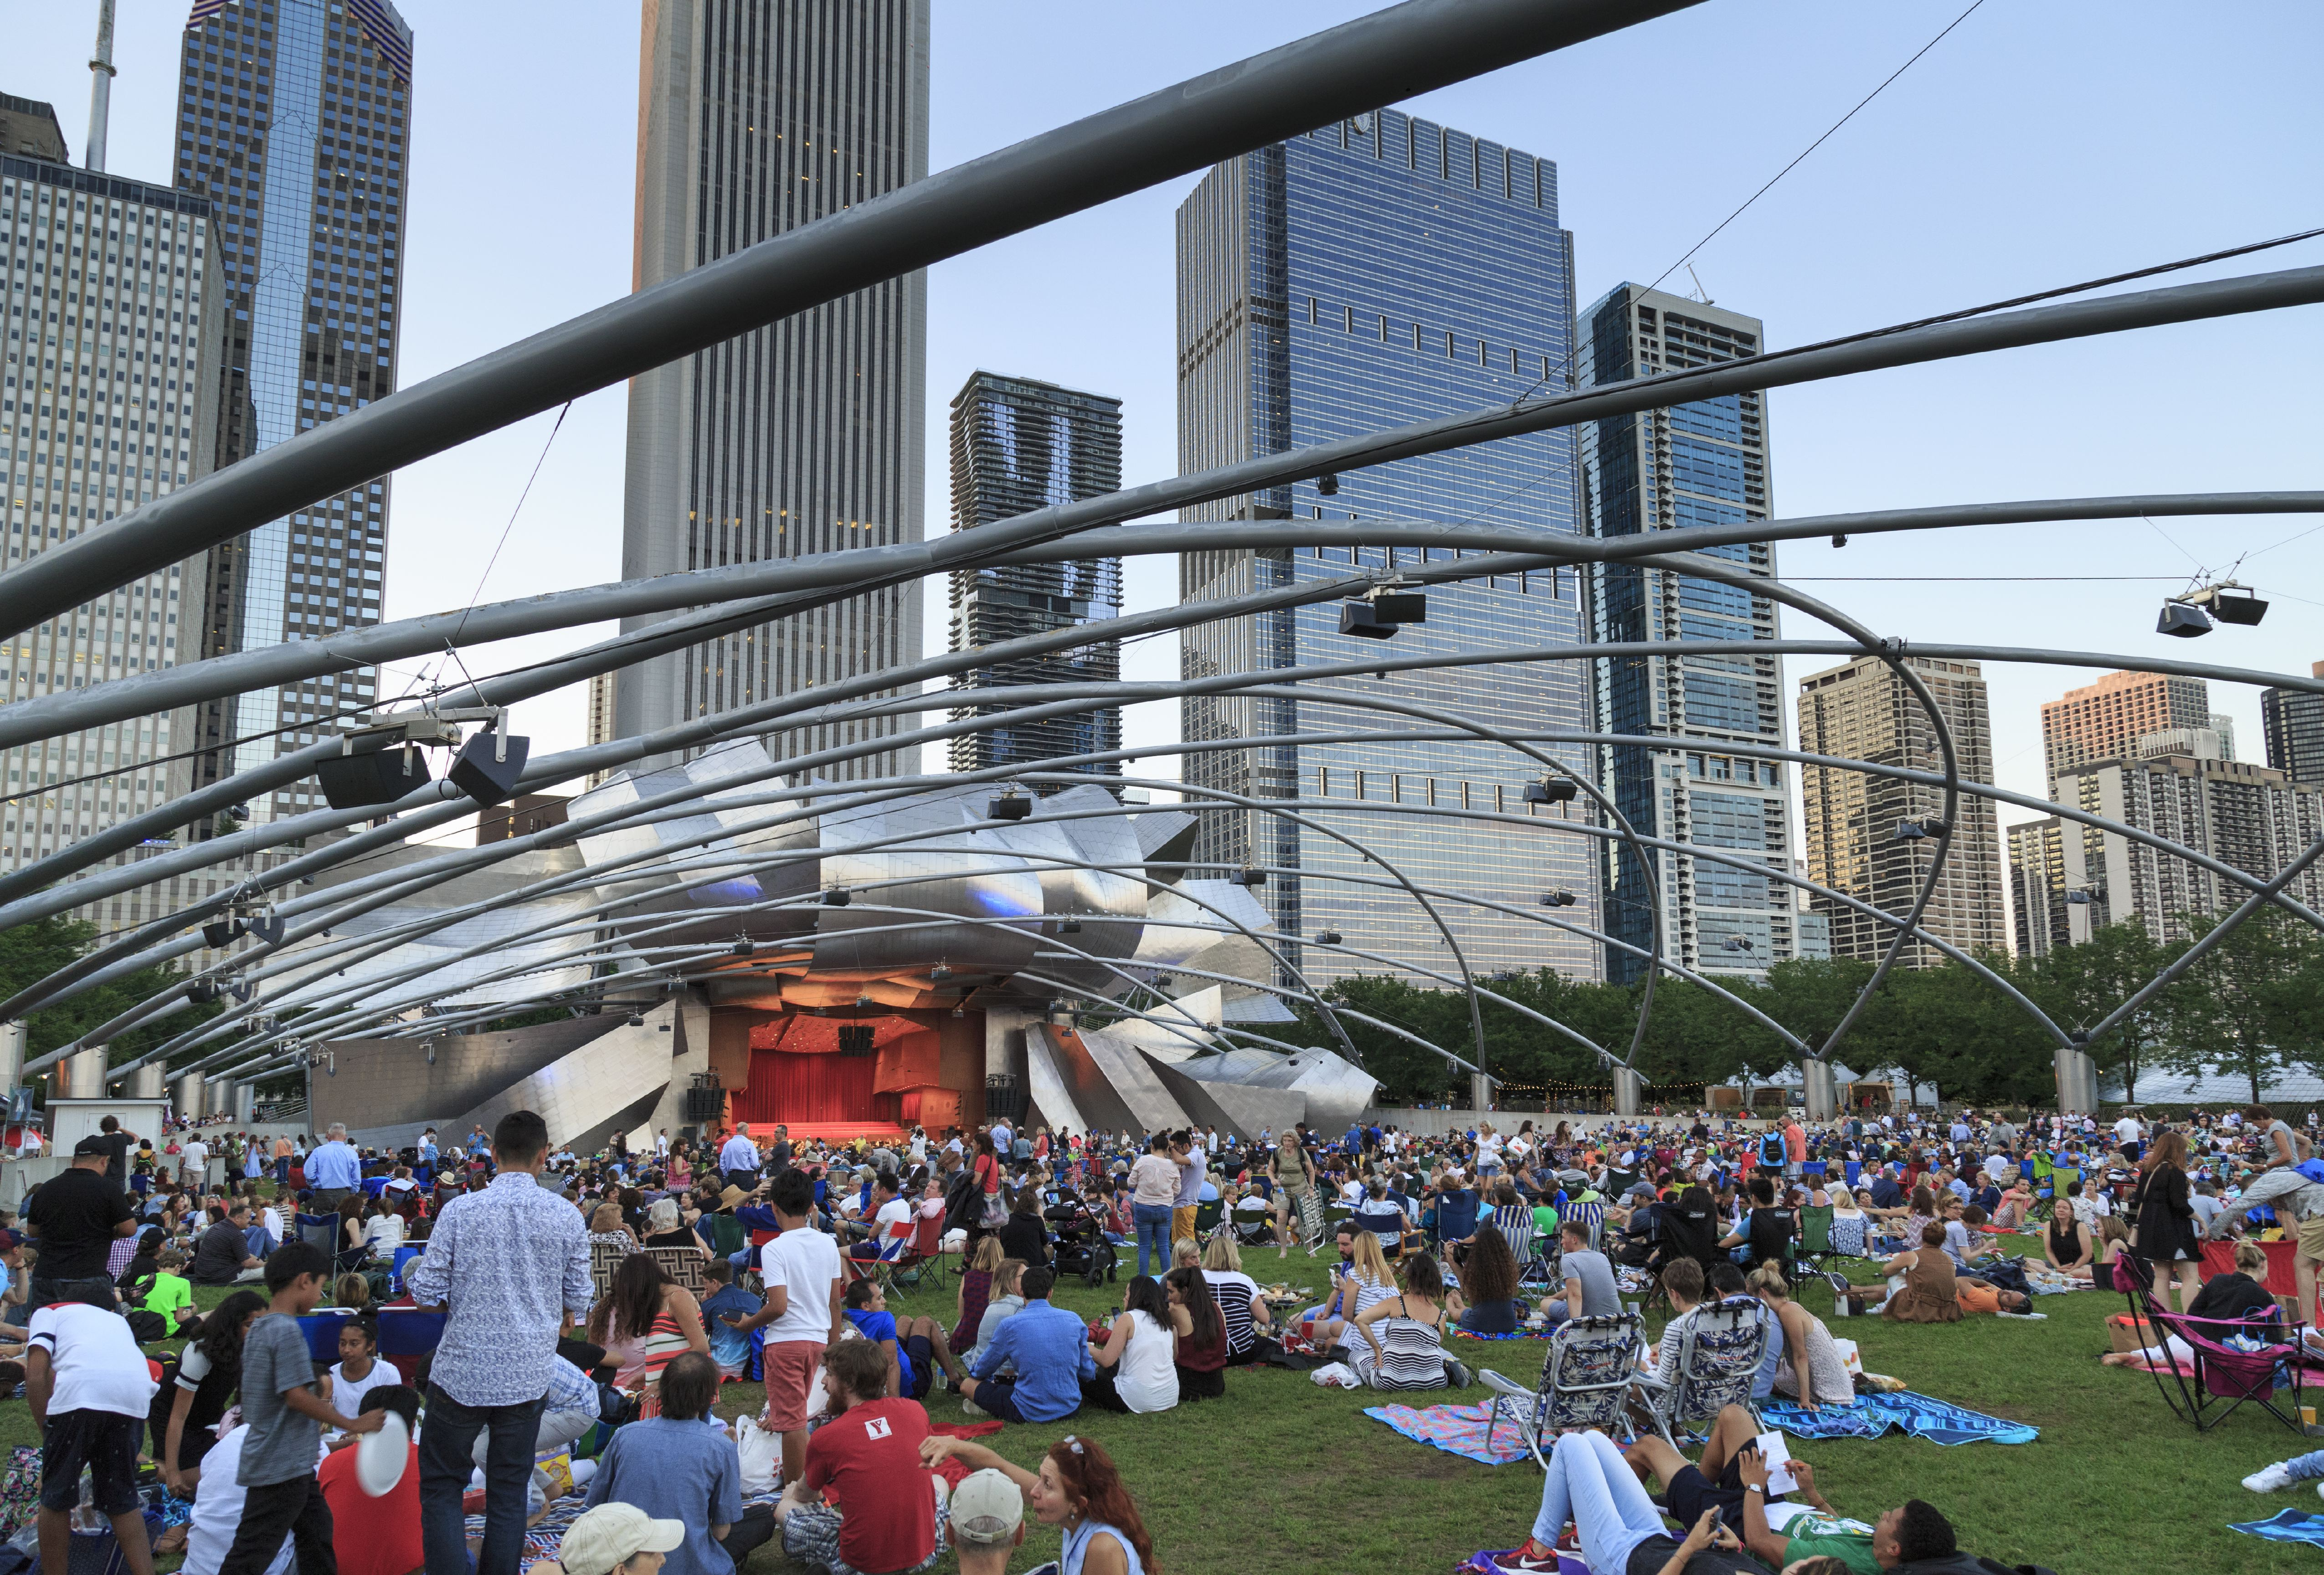 15 places to enjoy Chicago summer outside with friends and